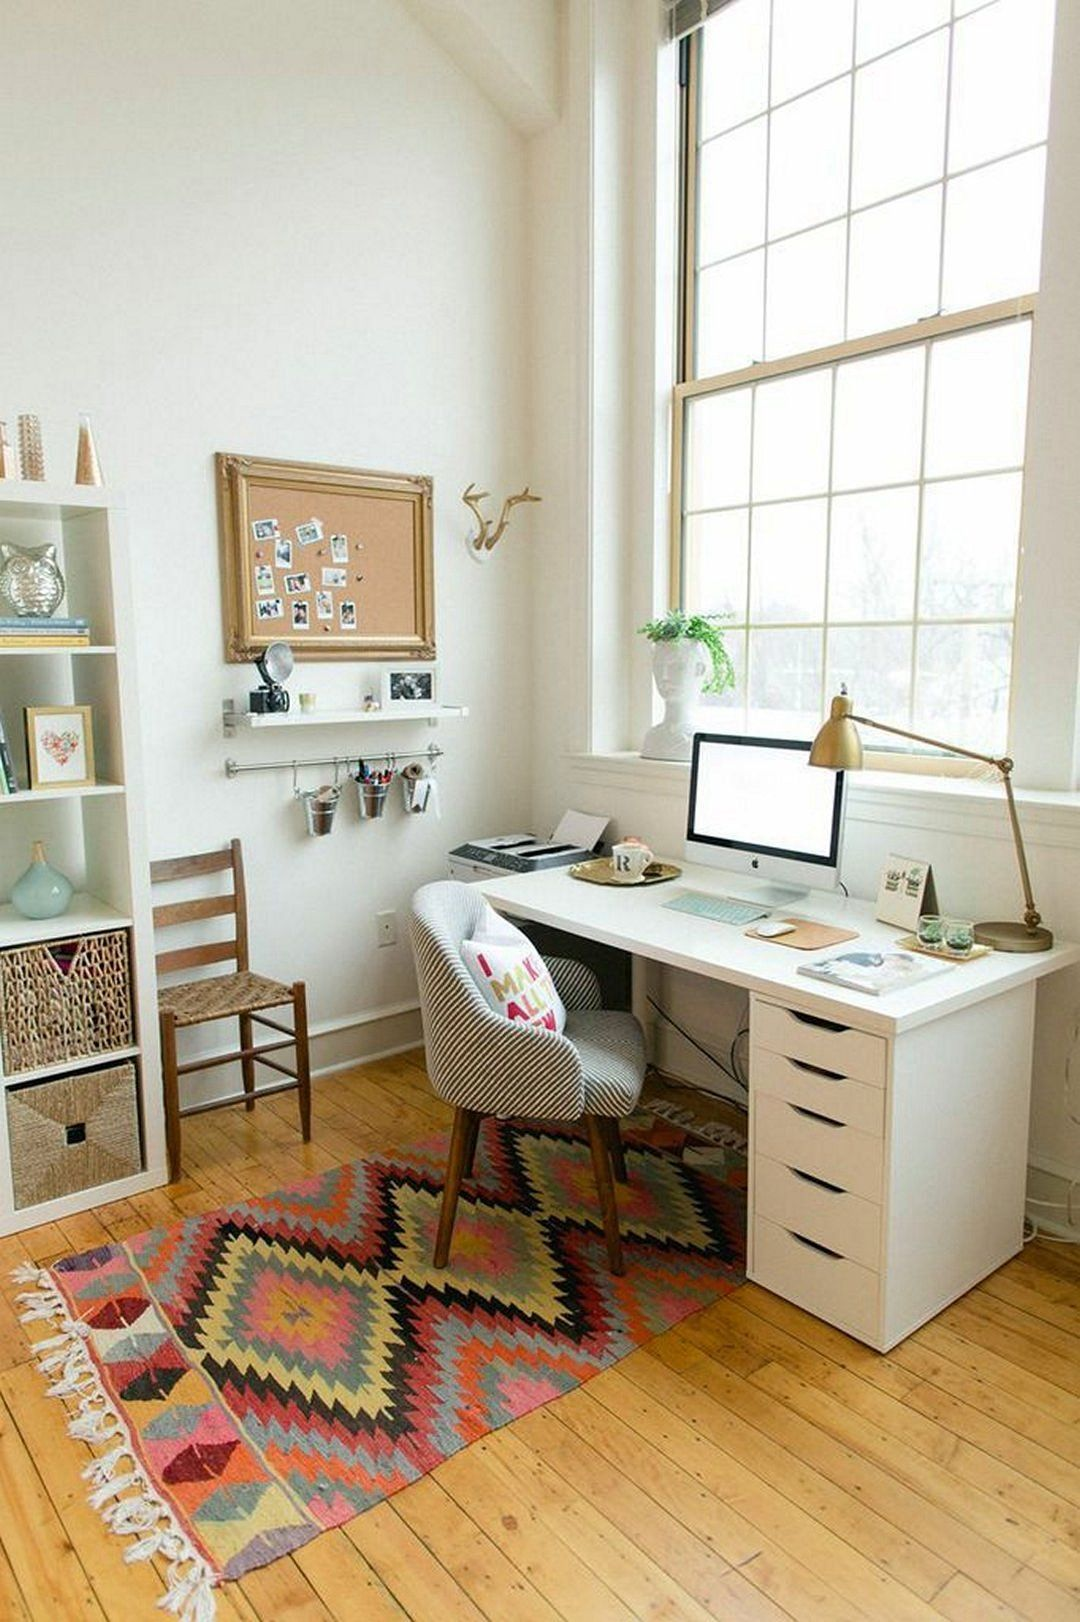 170 Beautiful Home Office Design Ideas | Home decor | Pinterest ...